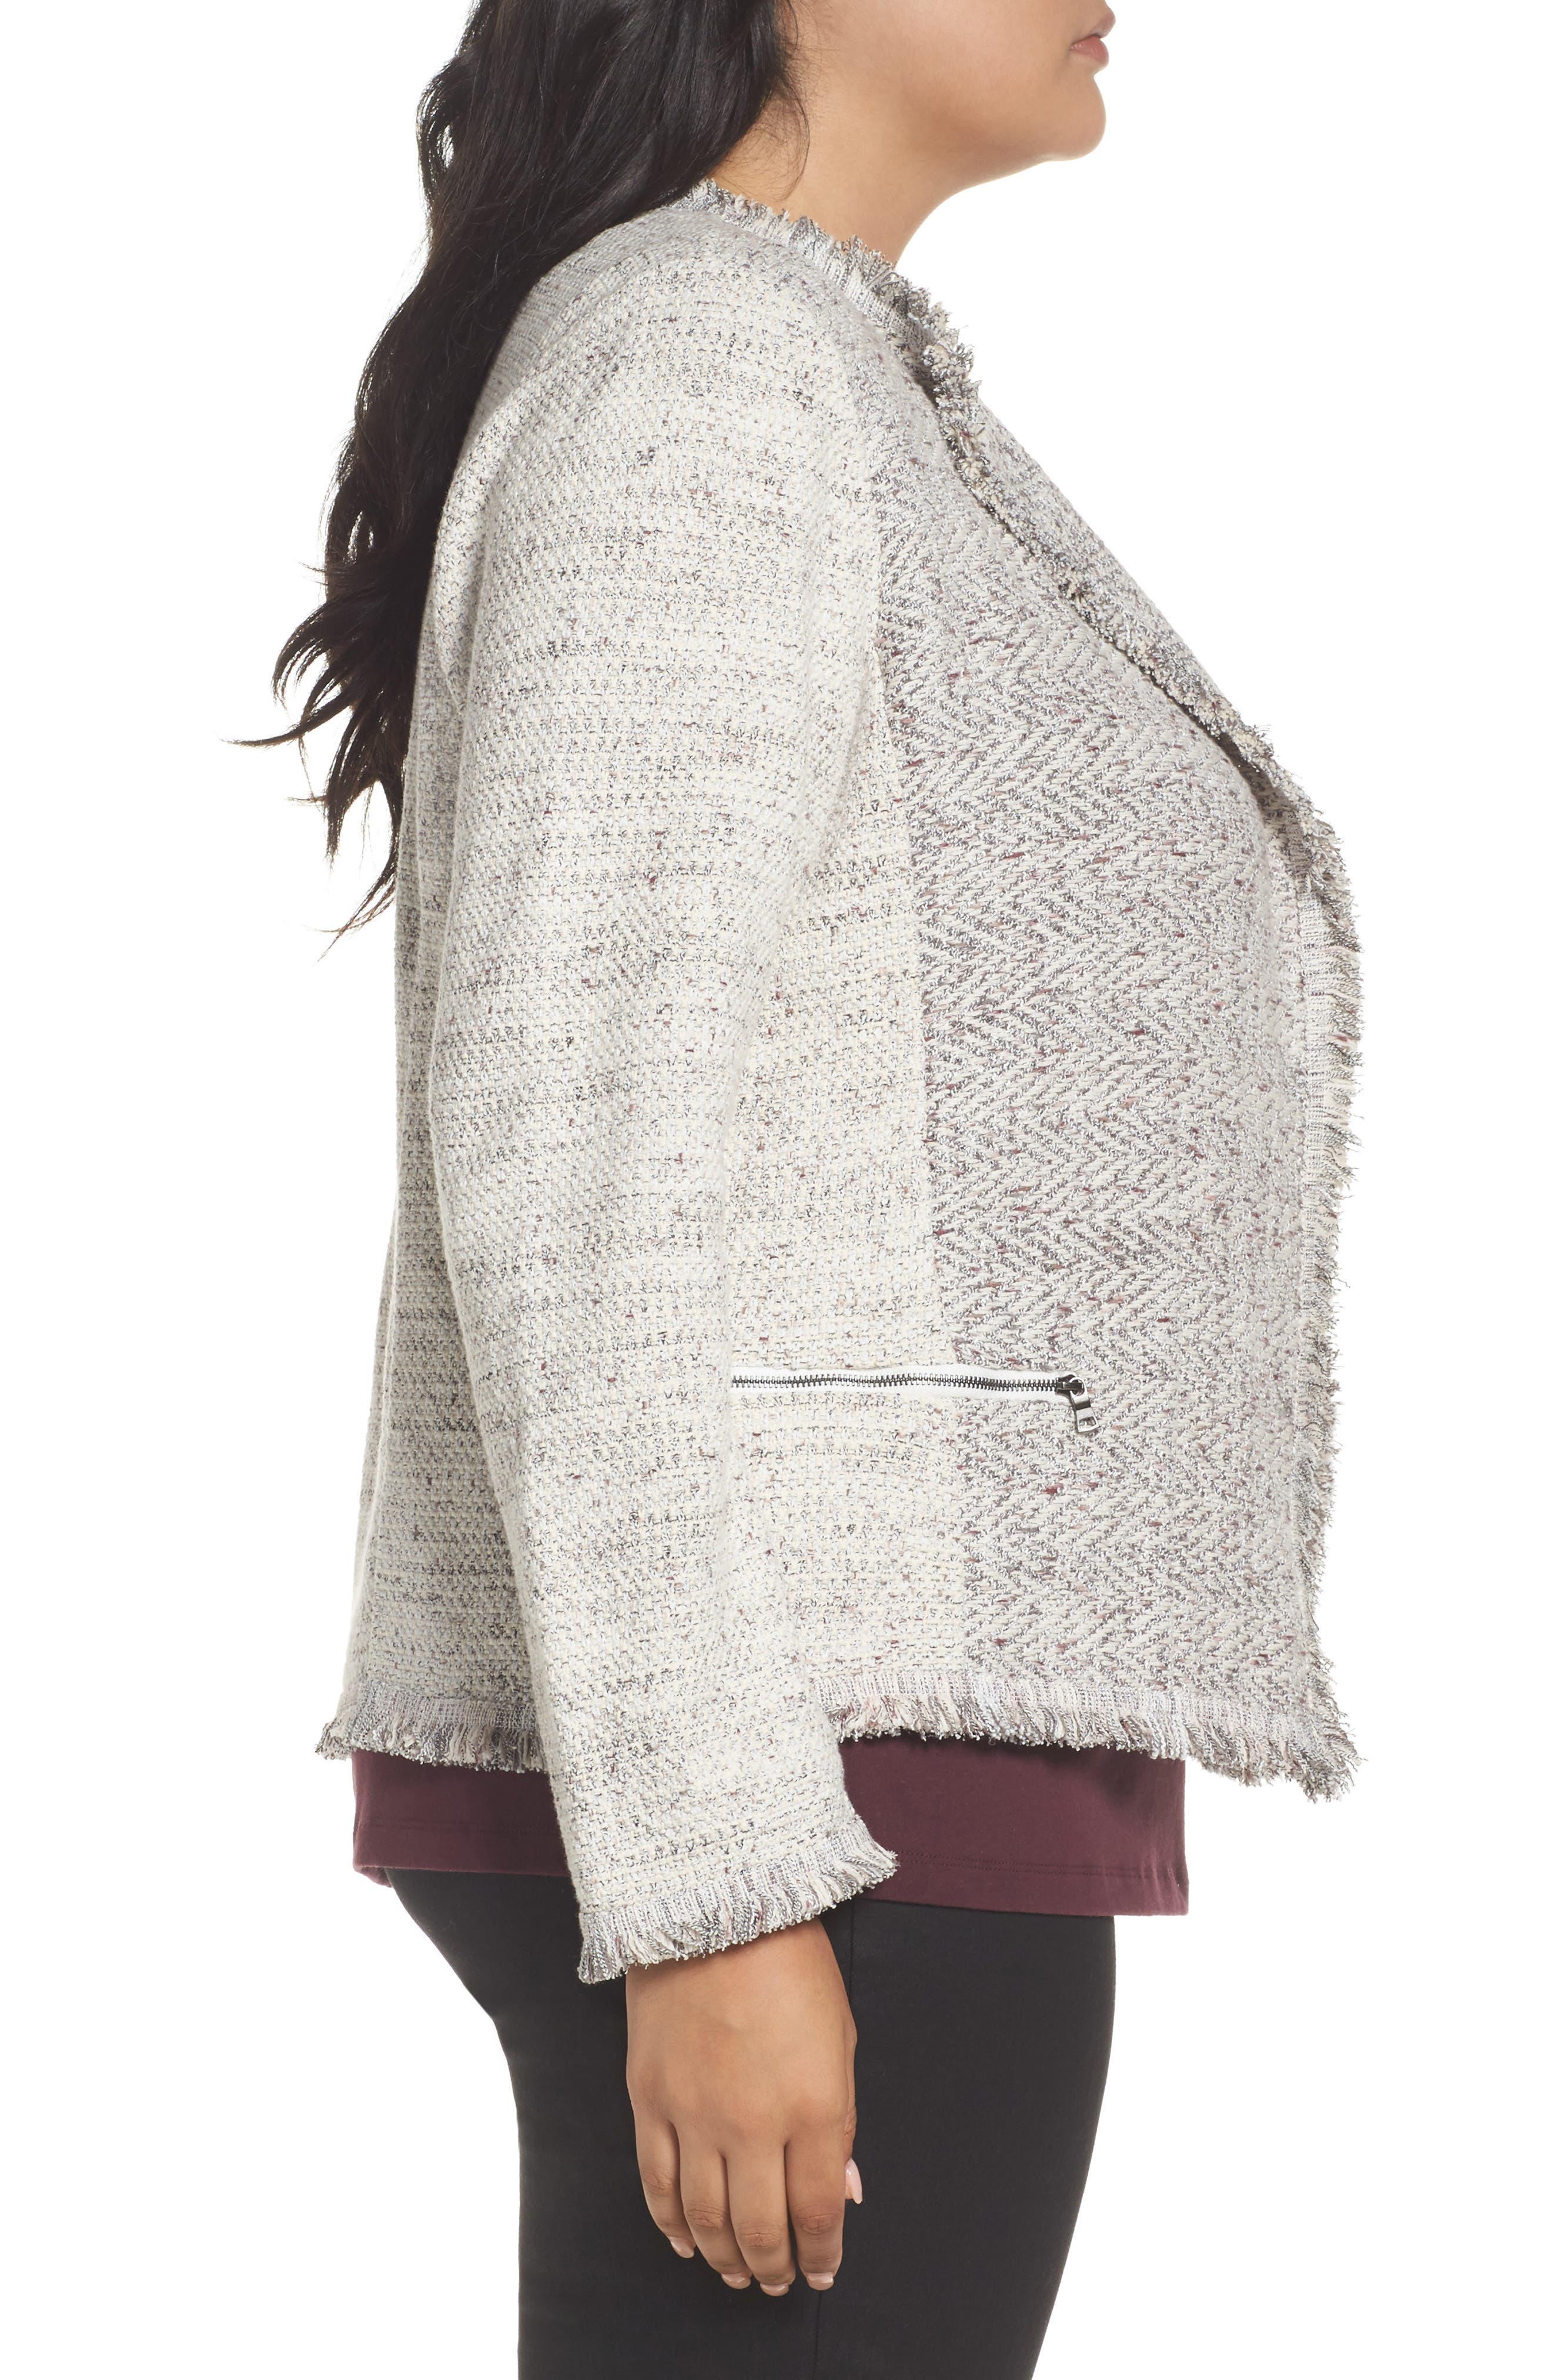 Chilled Tweed Jacket,                             Alternate thumbnail 3, color,                             Grey Multi